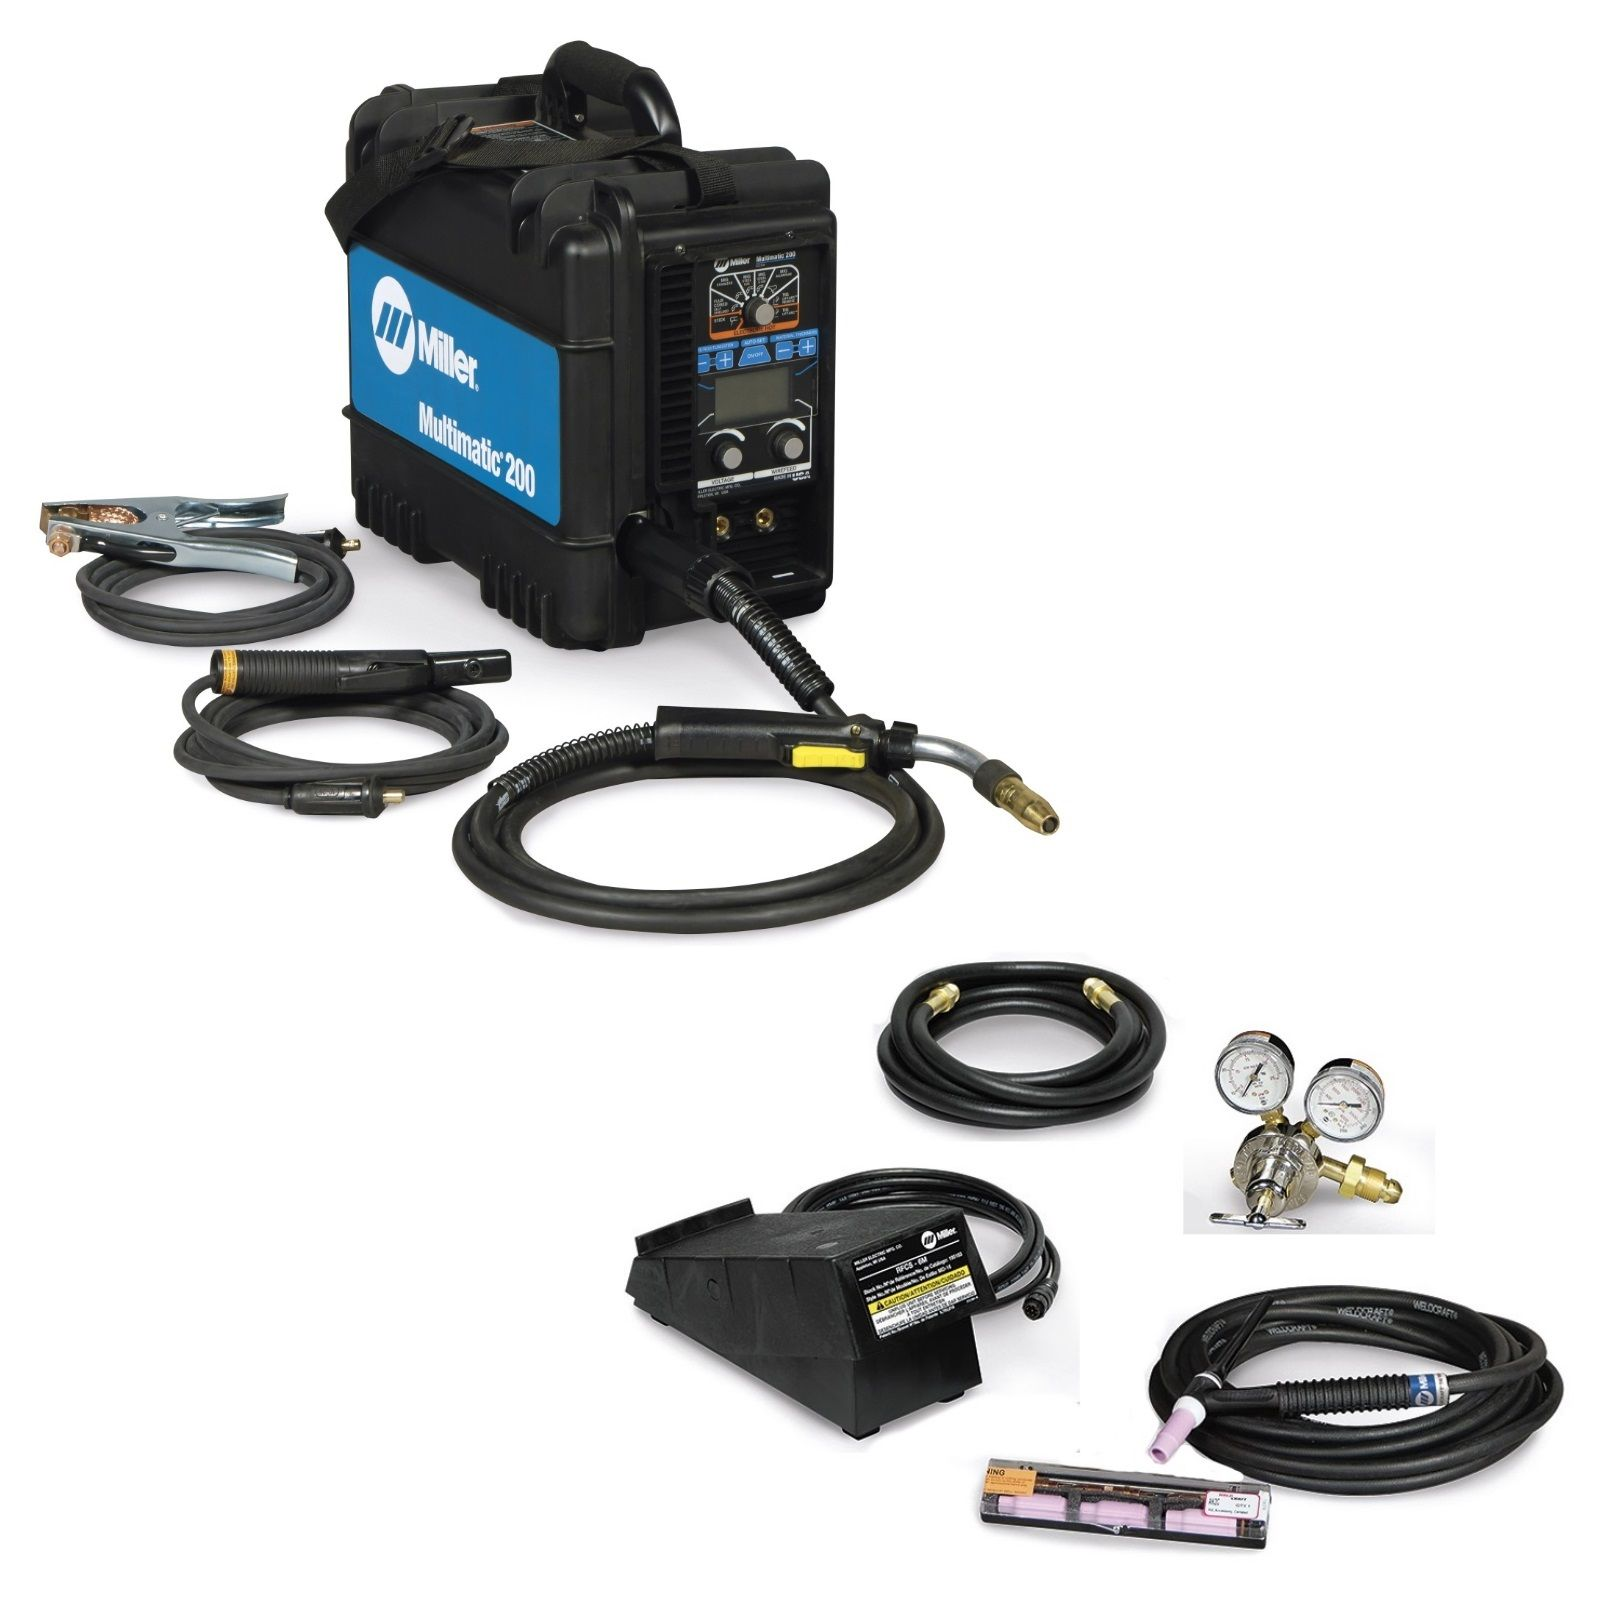 Miller Multimatic 200 Multiprocess Welder with TIG Contractor Kit (951649)